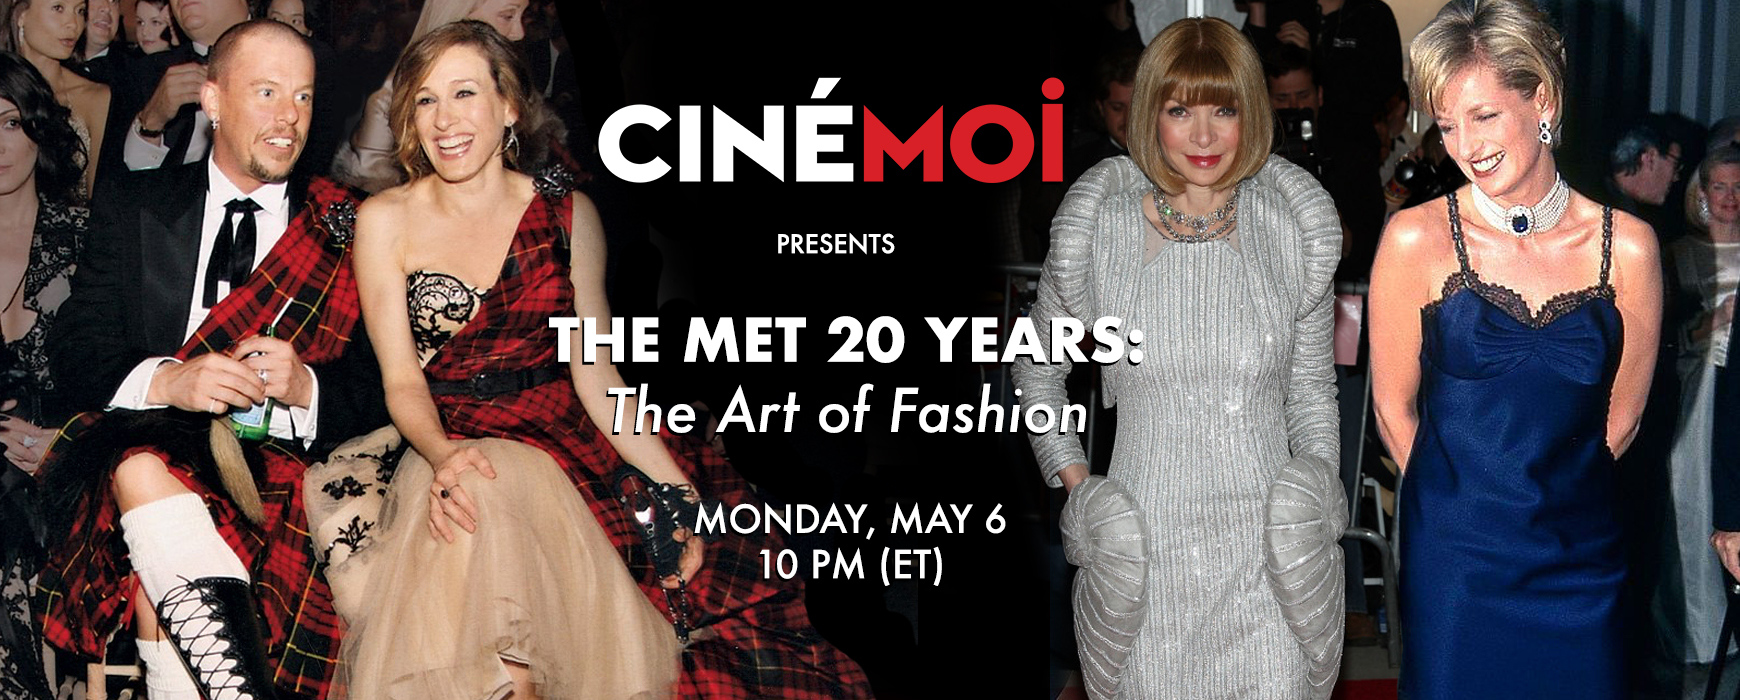 The Met 20 Years: The art of Fashion on Cinémoi